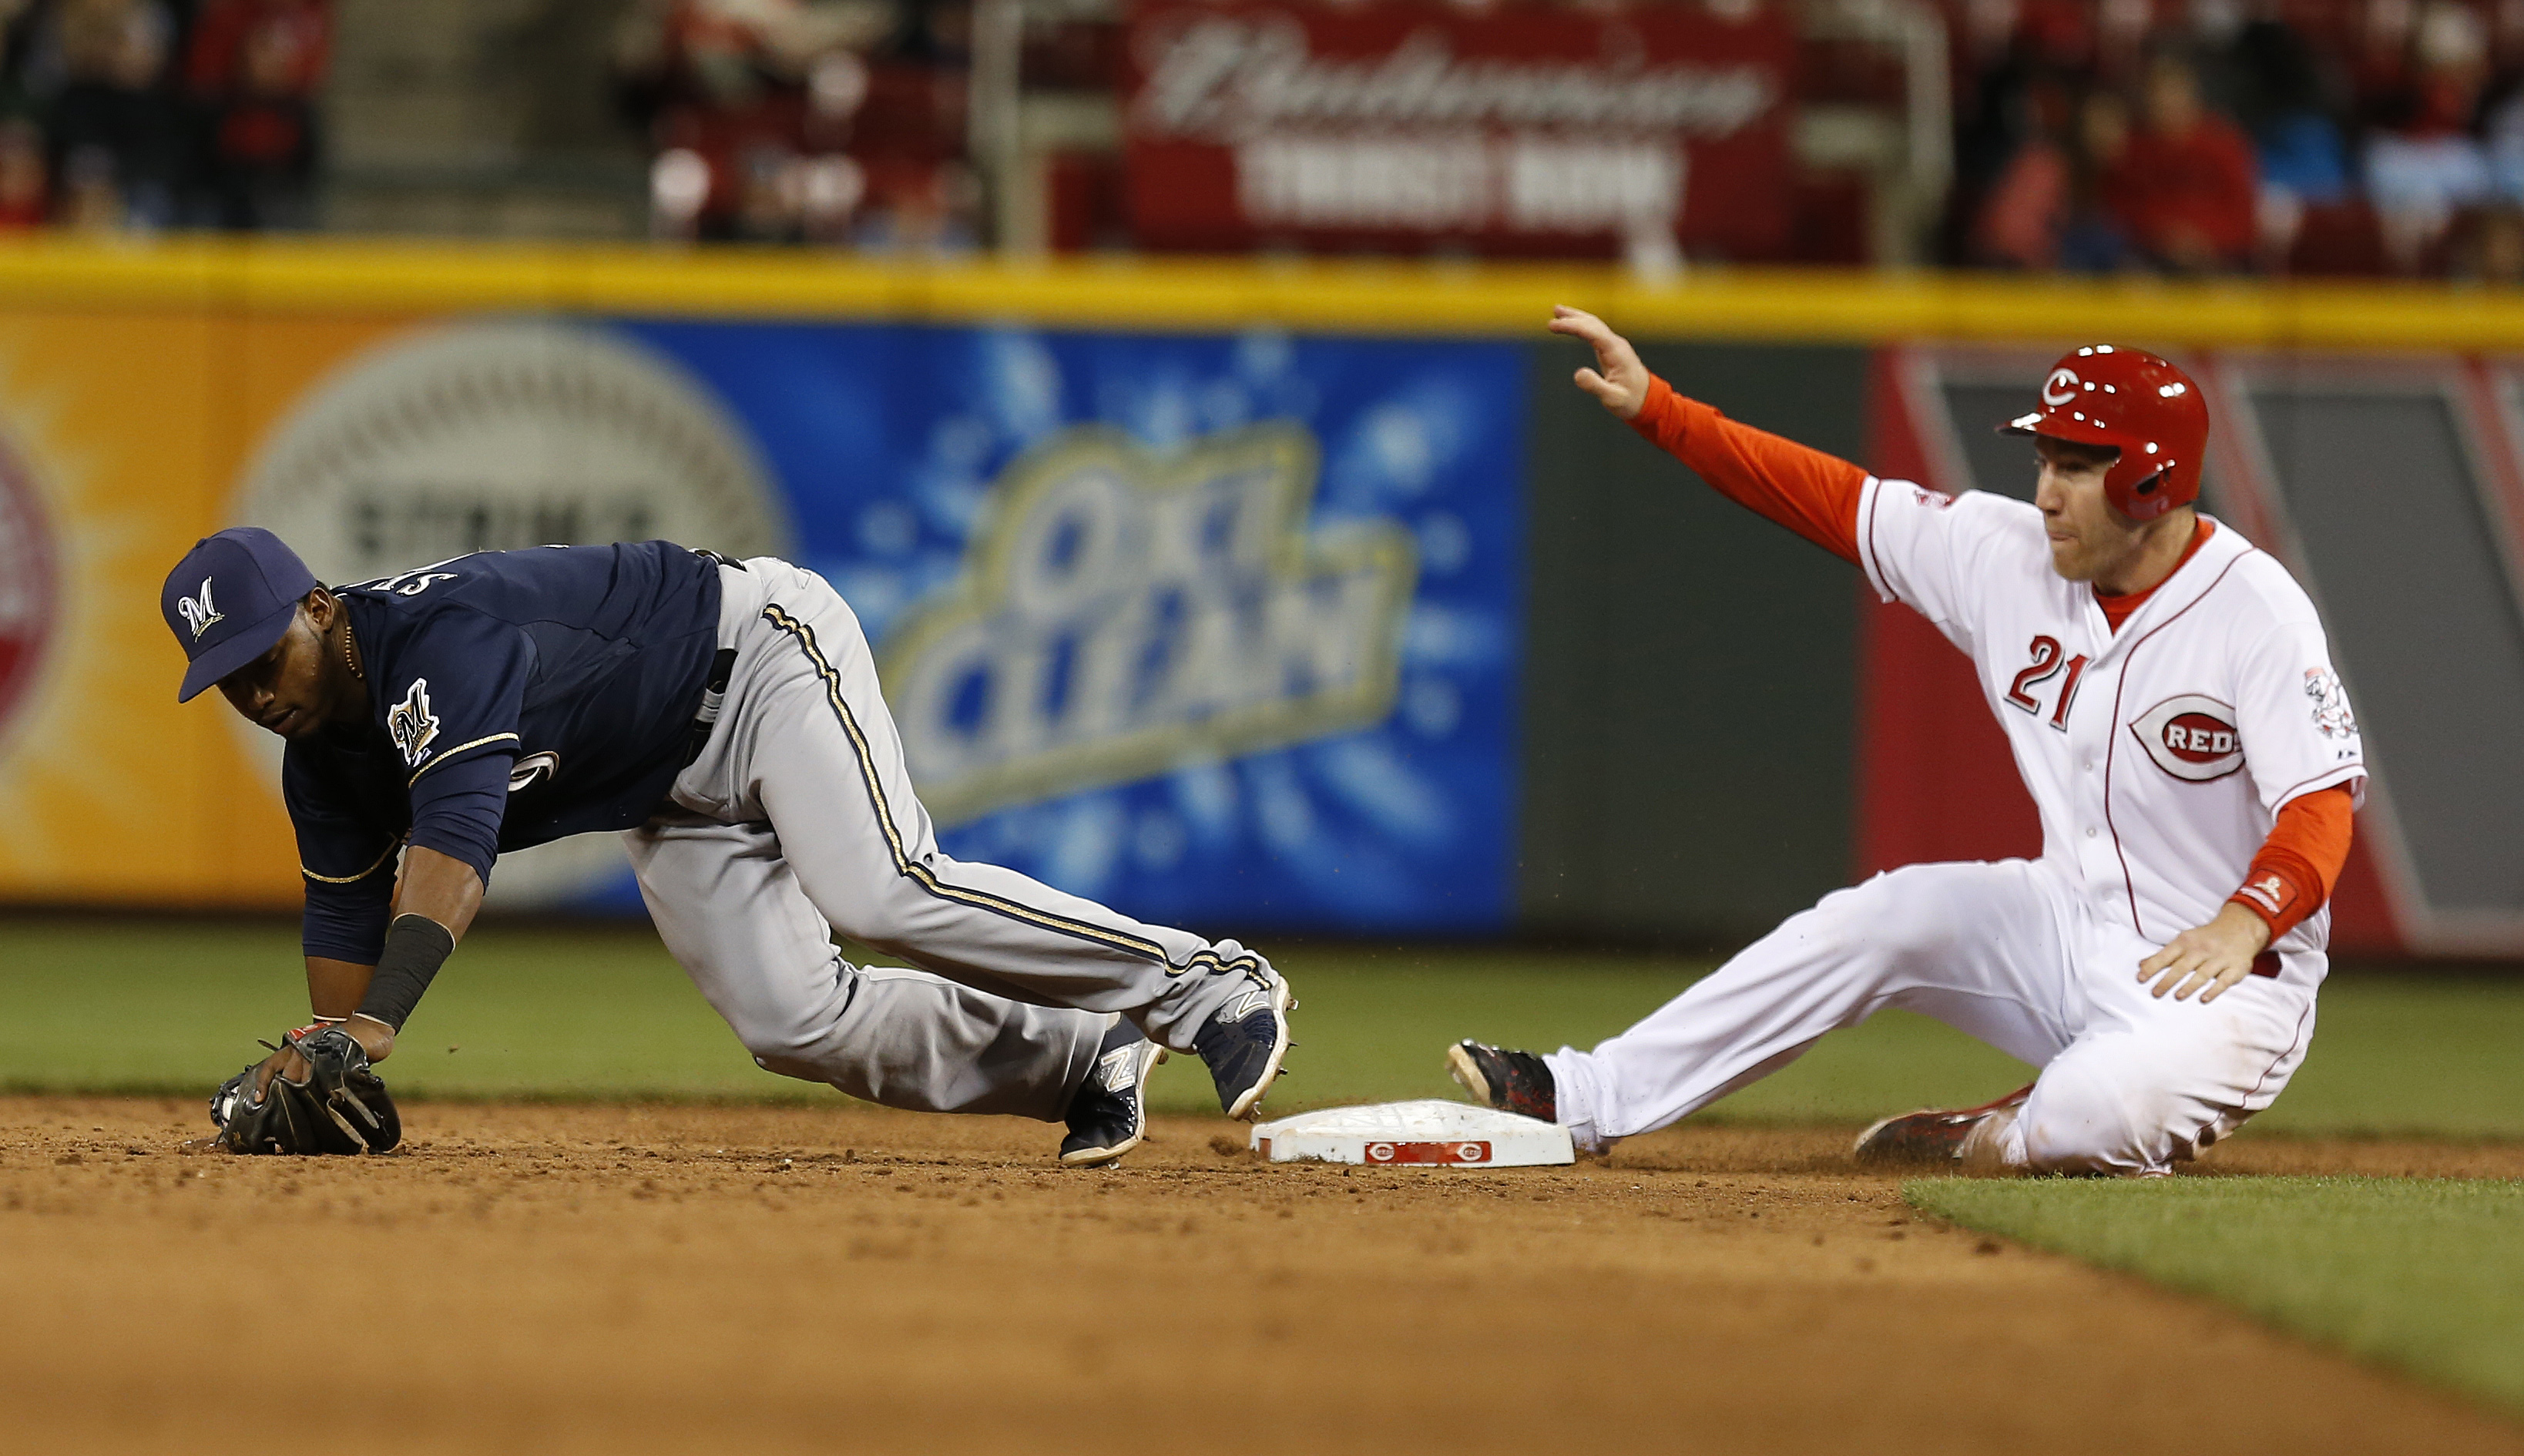 Cincinnati Reds' Todd Frazier (21) is safe at second base with a steal as Milwaukee Brewers' shortstop Jean Segura takes the wide throw during the sixth inning of a baseball game Monday, April 27, 2015, in Cincinnati. (AP Photo/Gary Landers)